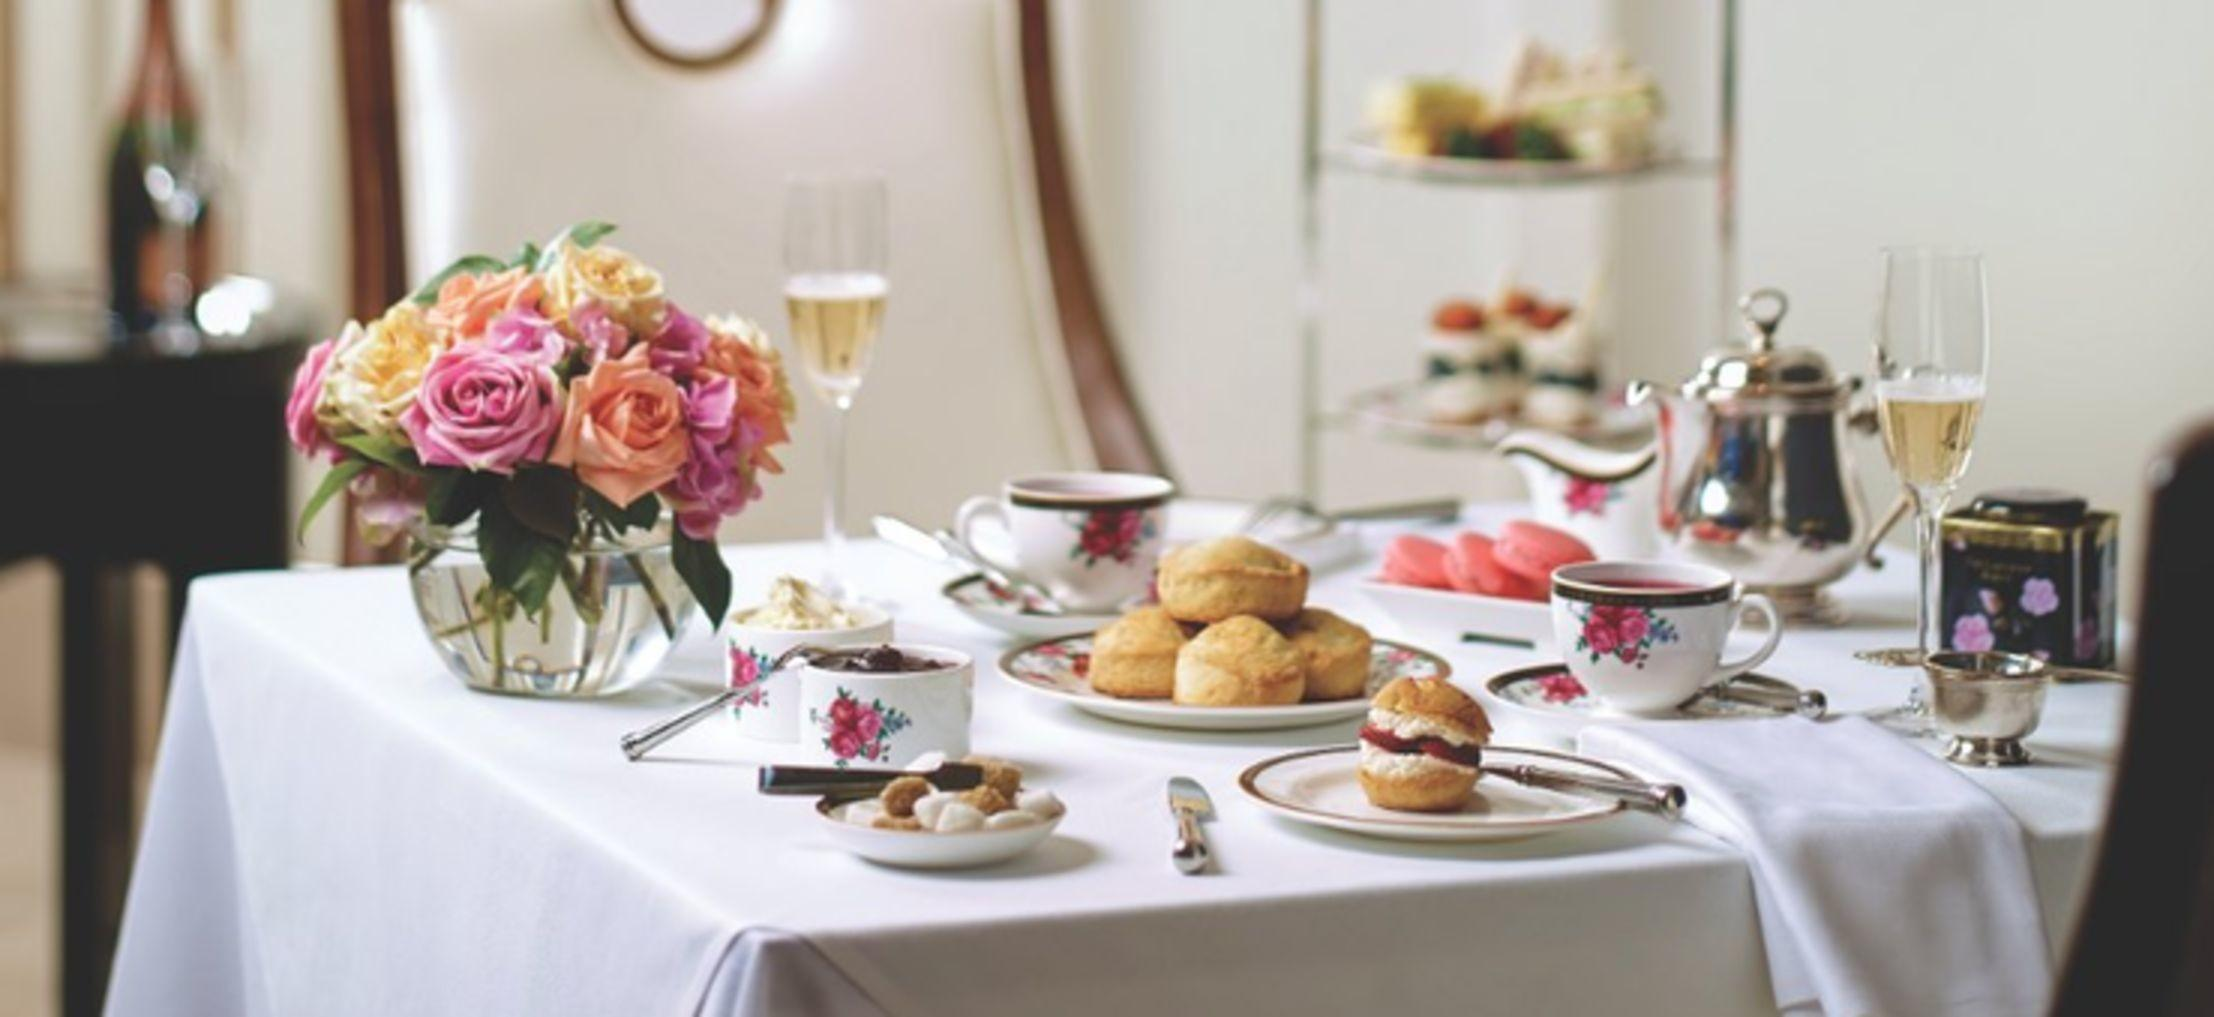 Best Places Afternoon Tea Boston Wheretraveler